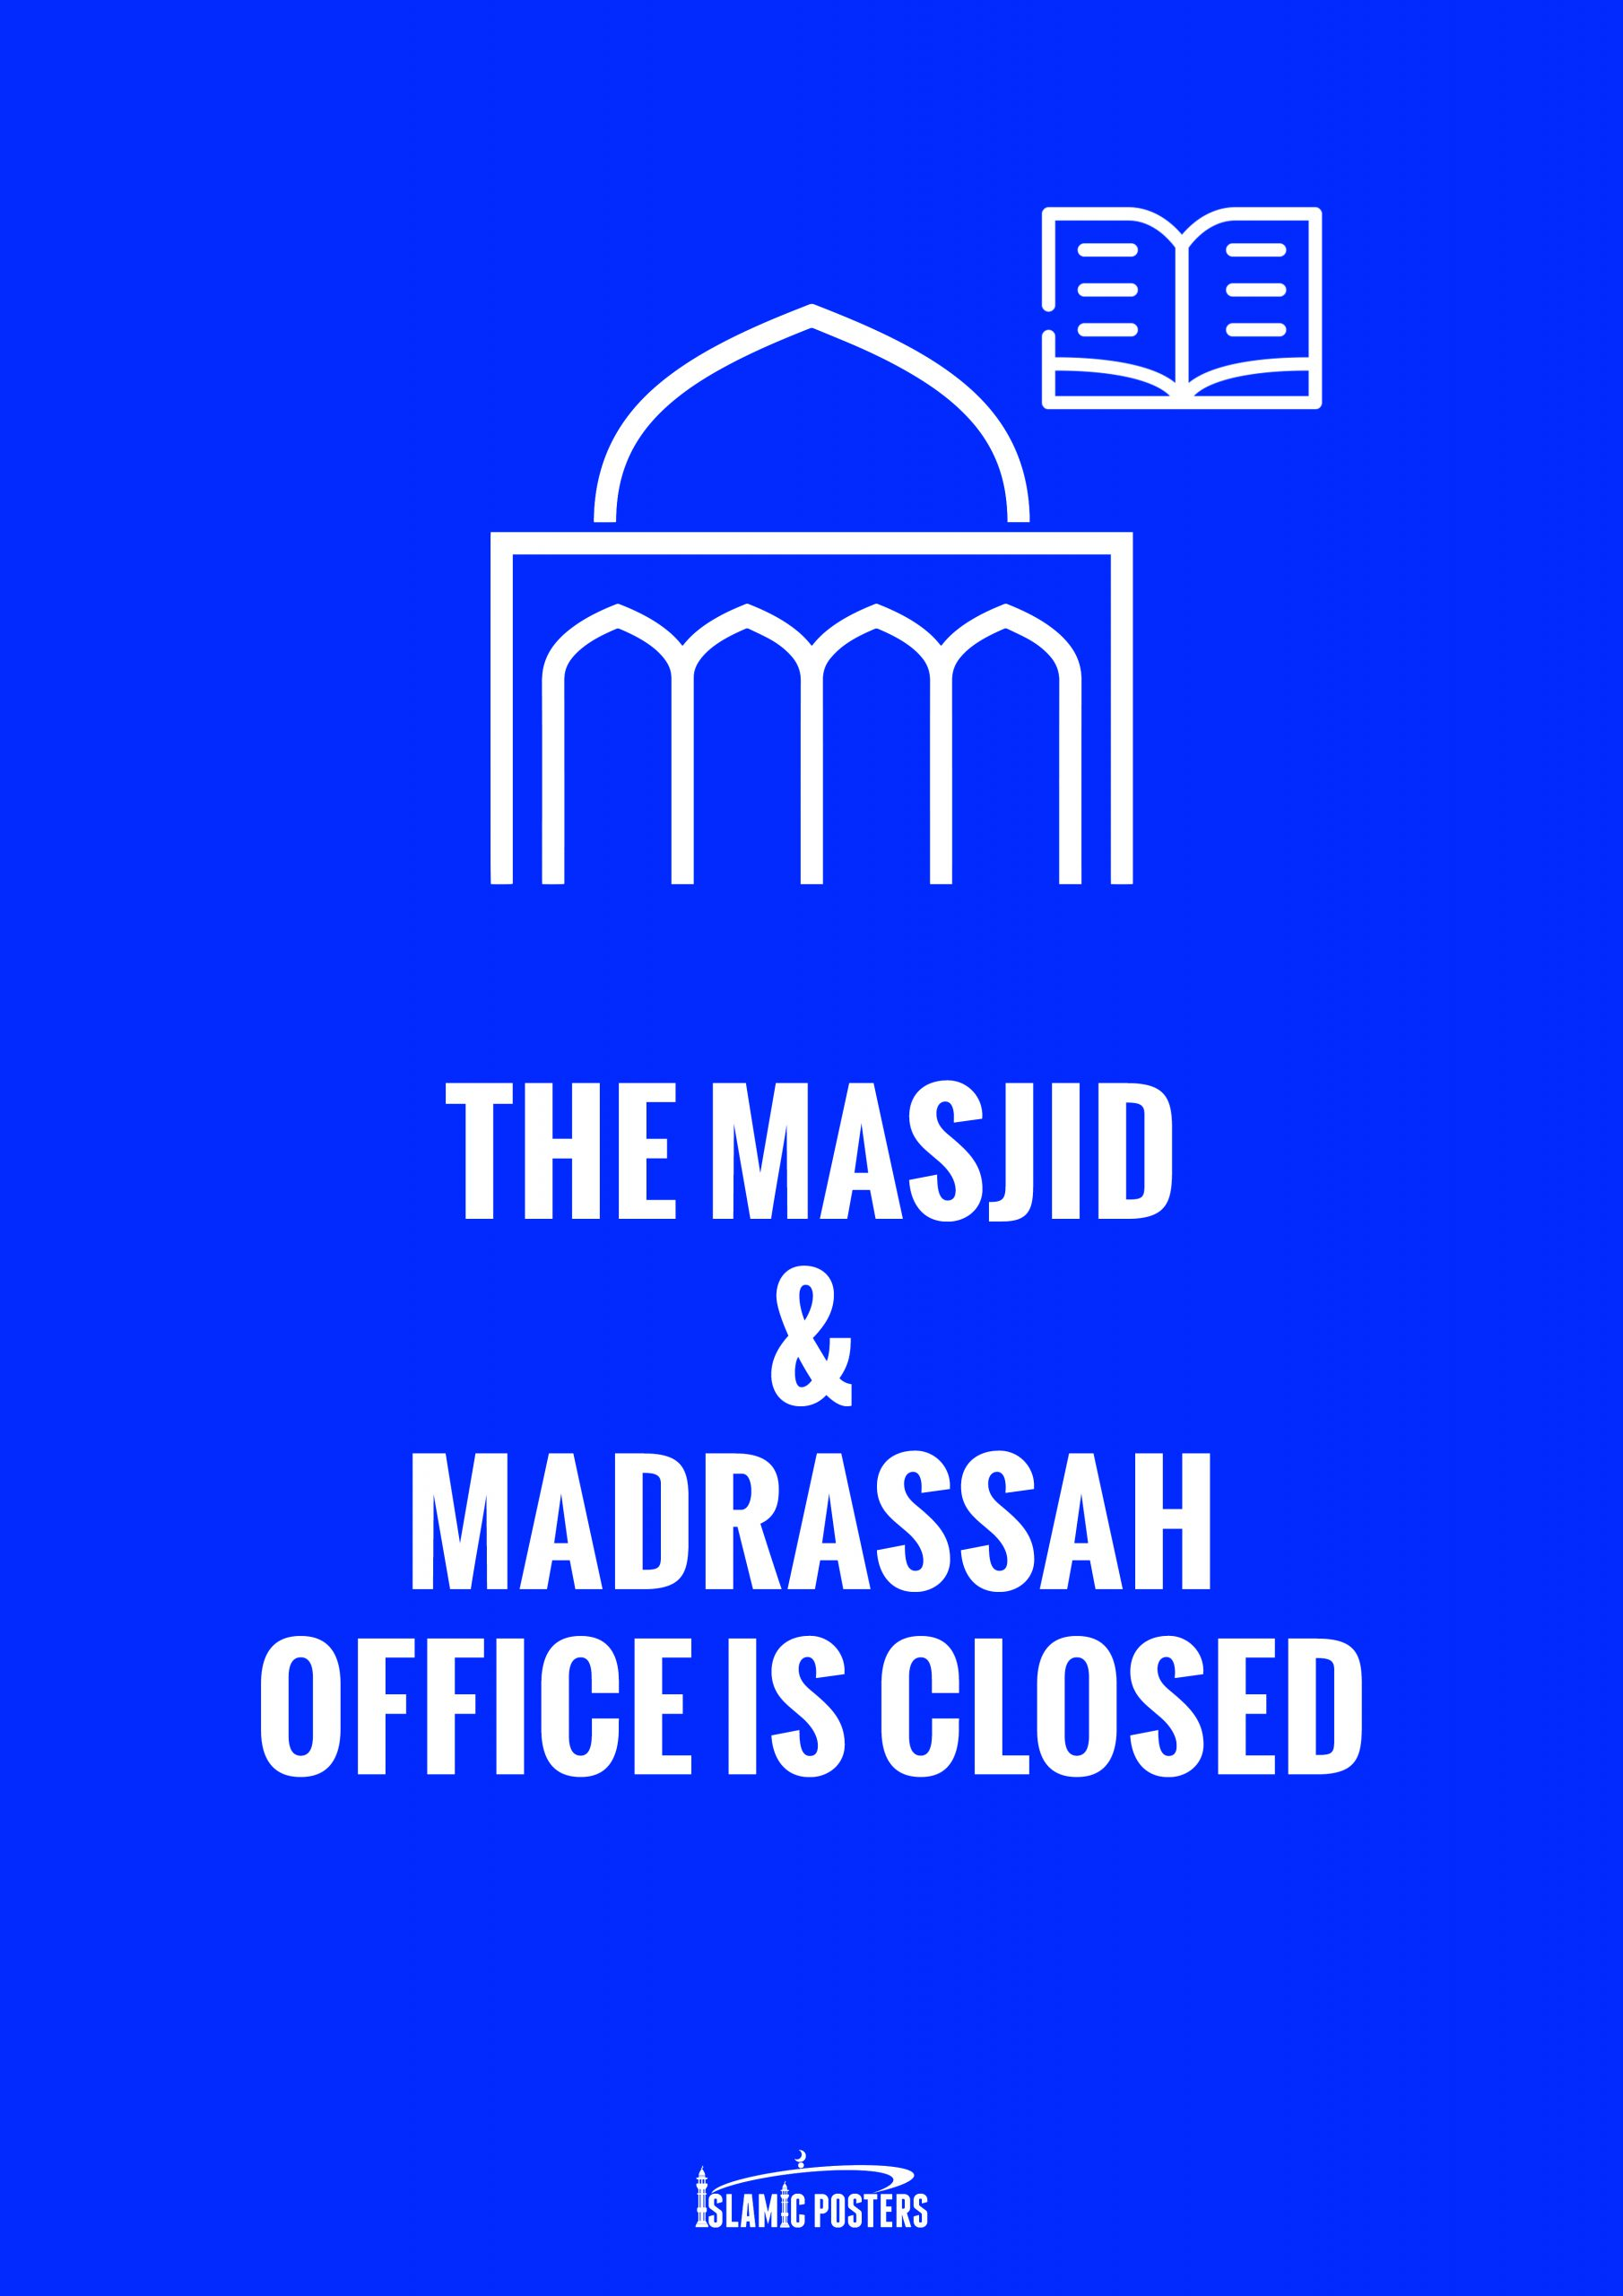 Covid-19-Individual-Posters-for-the-Masjid-12.jpg